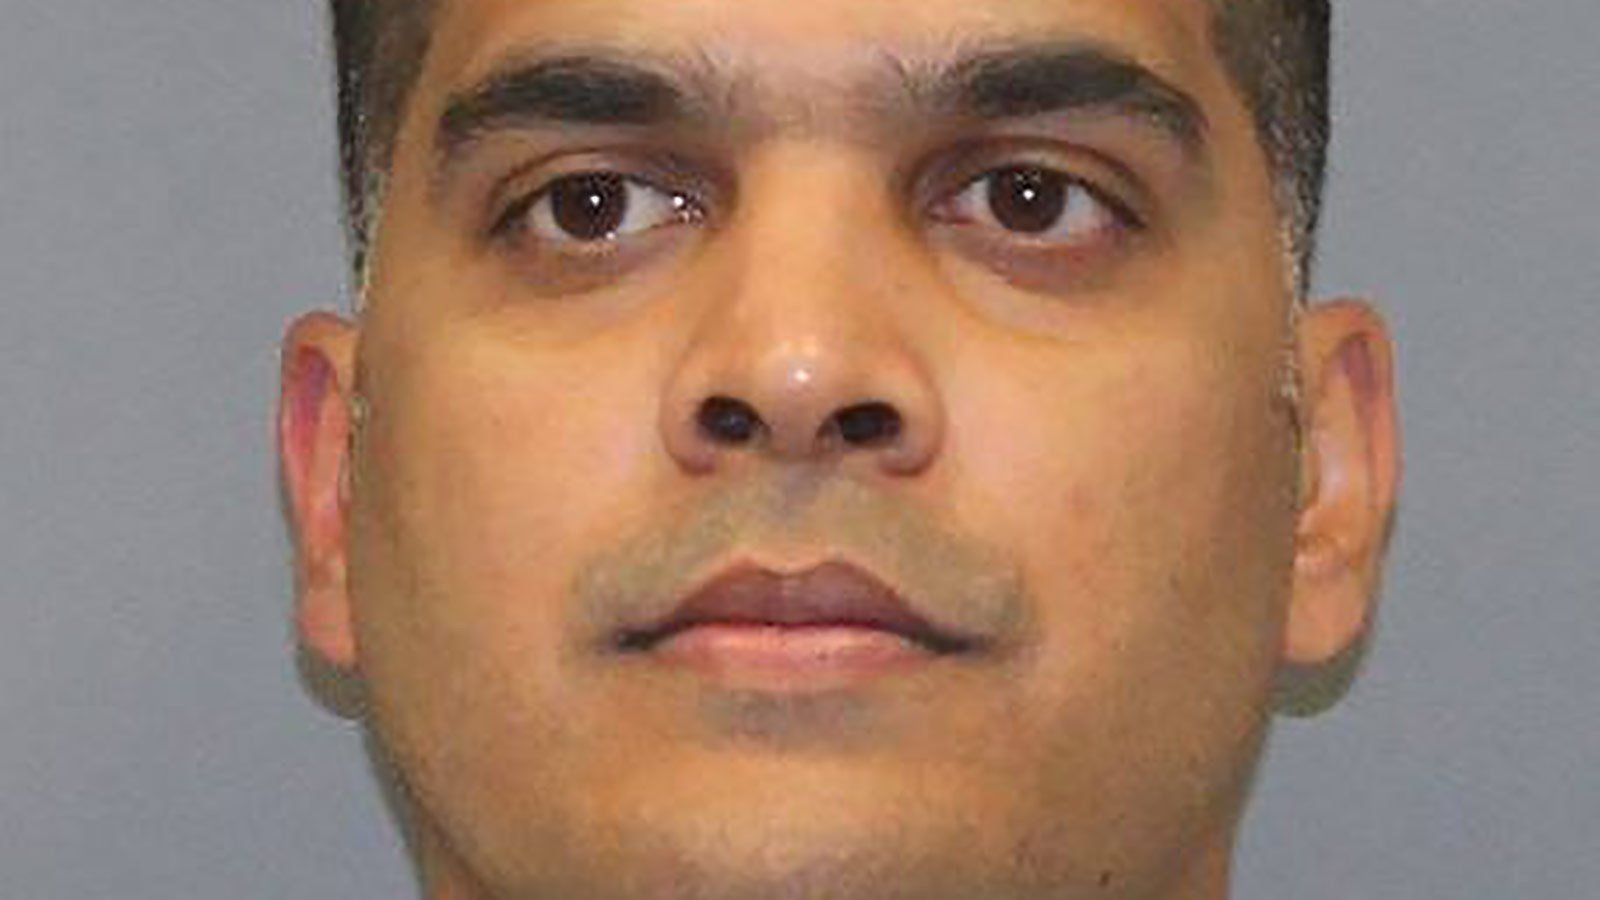 A grand jury in Dallas County, Texas, returned several charges, most notably capital murder, against Wesley Mathews. He is accused of killing Sherin Mathews in October 2017.